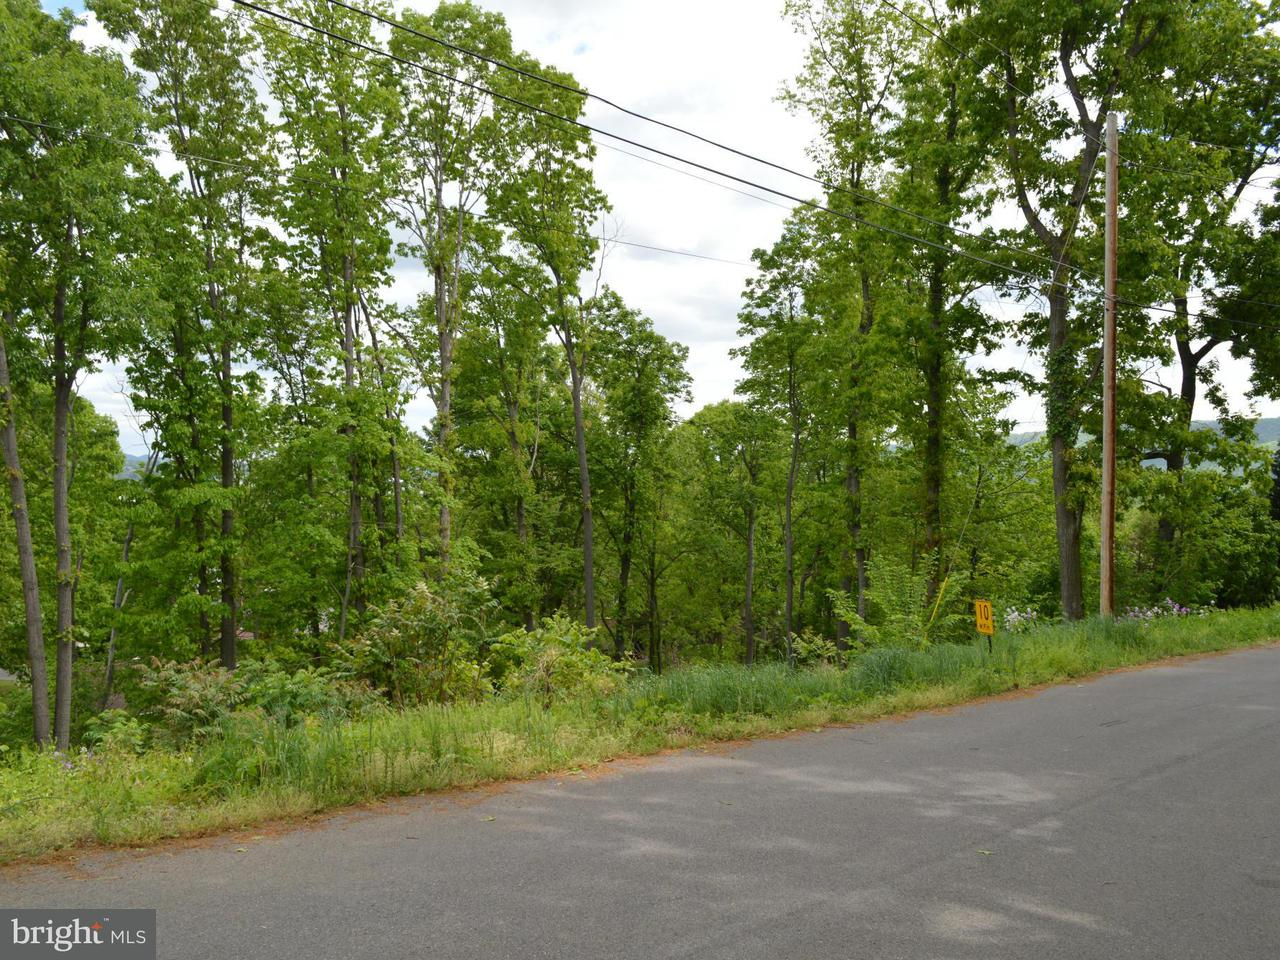 Land for Sale at 0 Carolyn St Wiley Ford, West Virginia 26767 United States